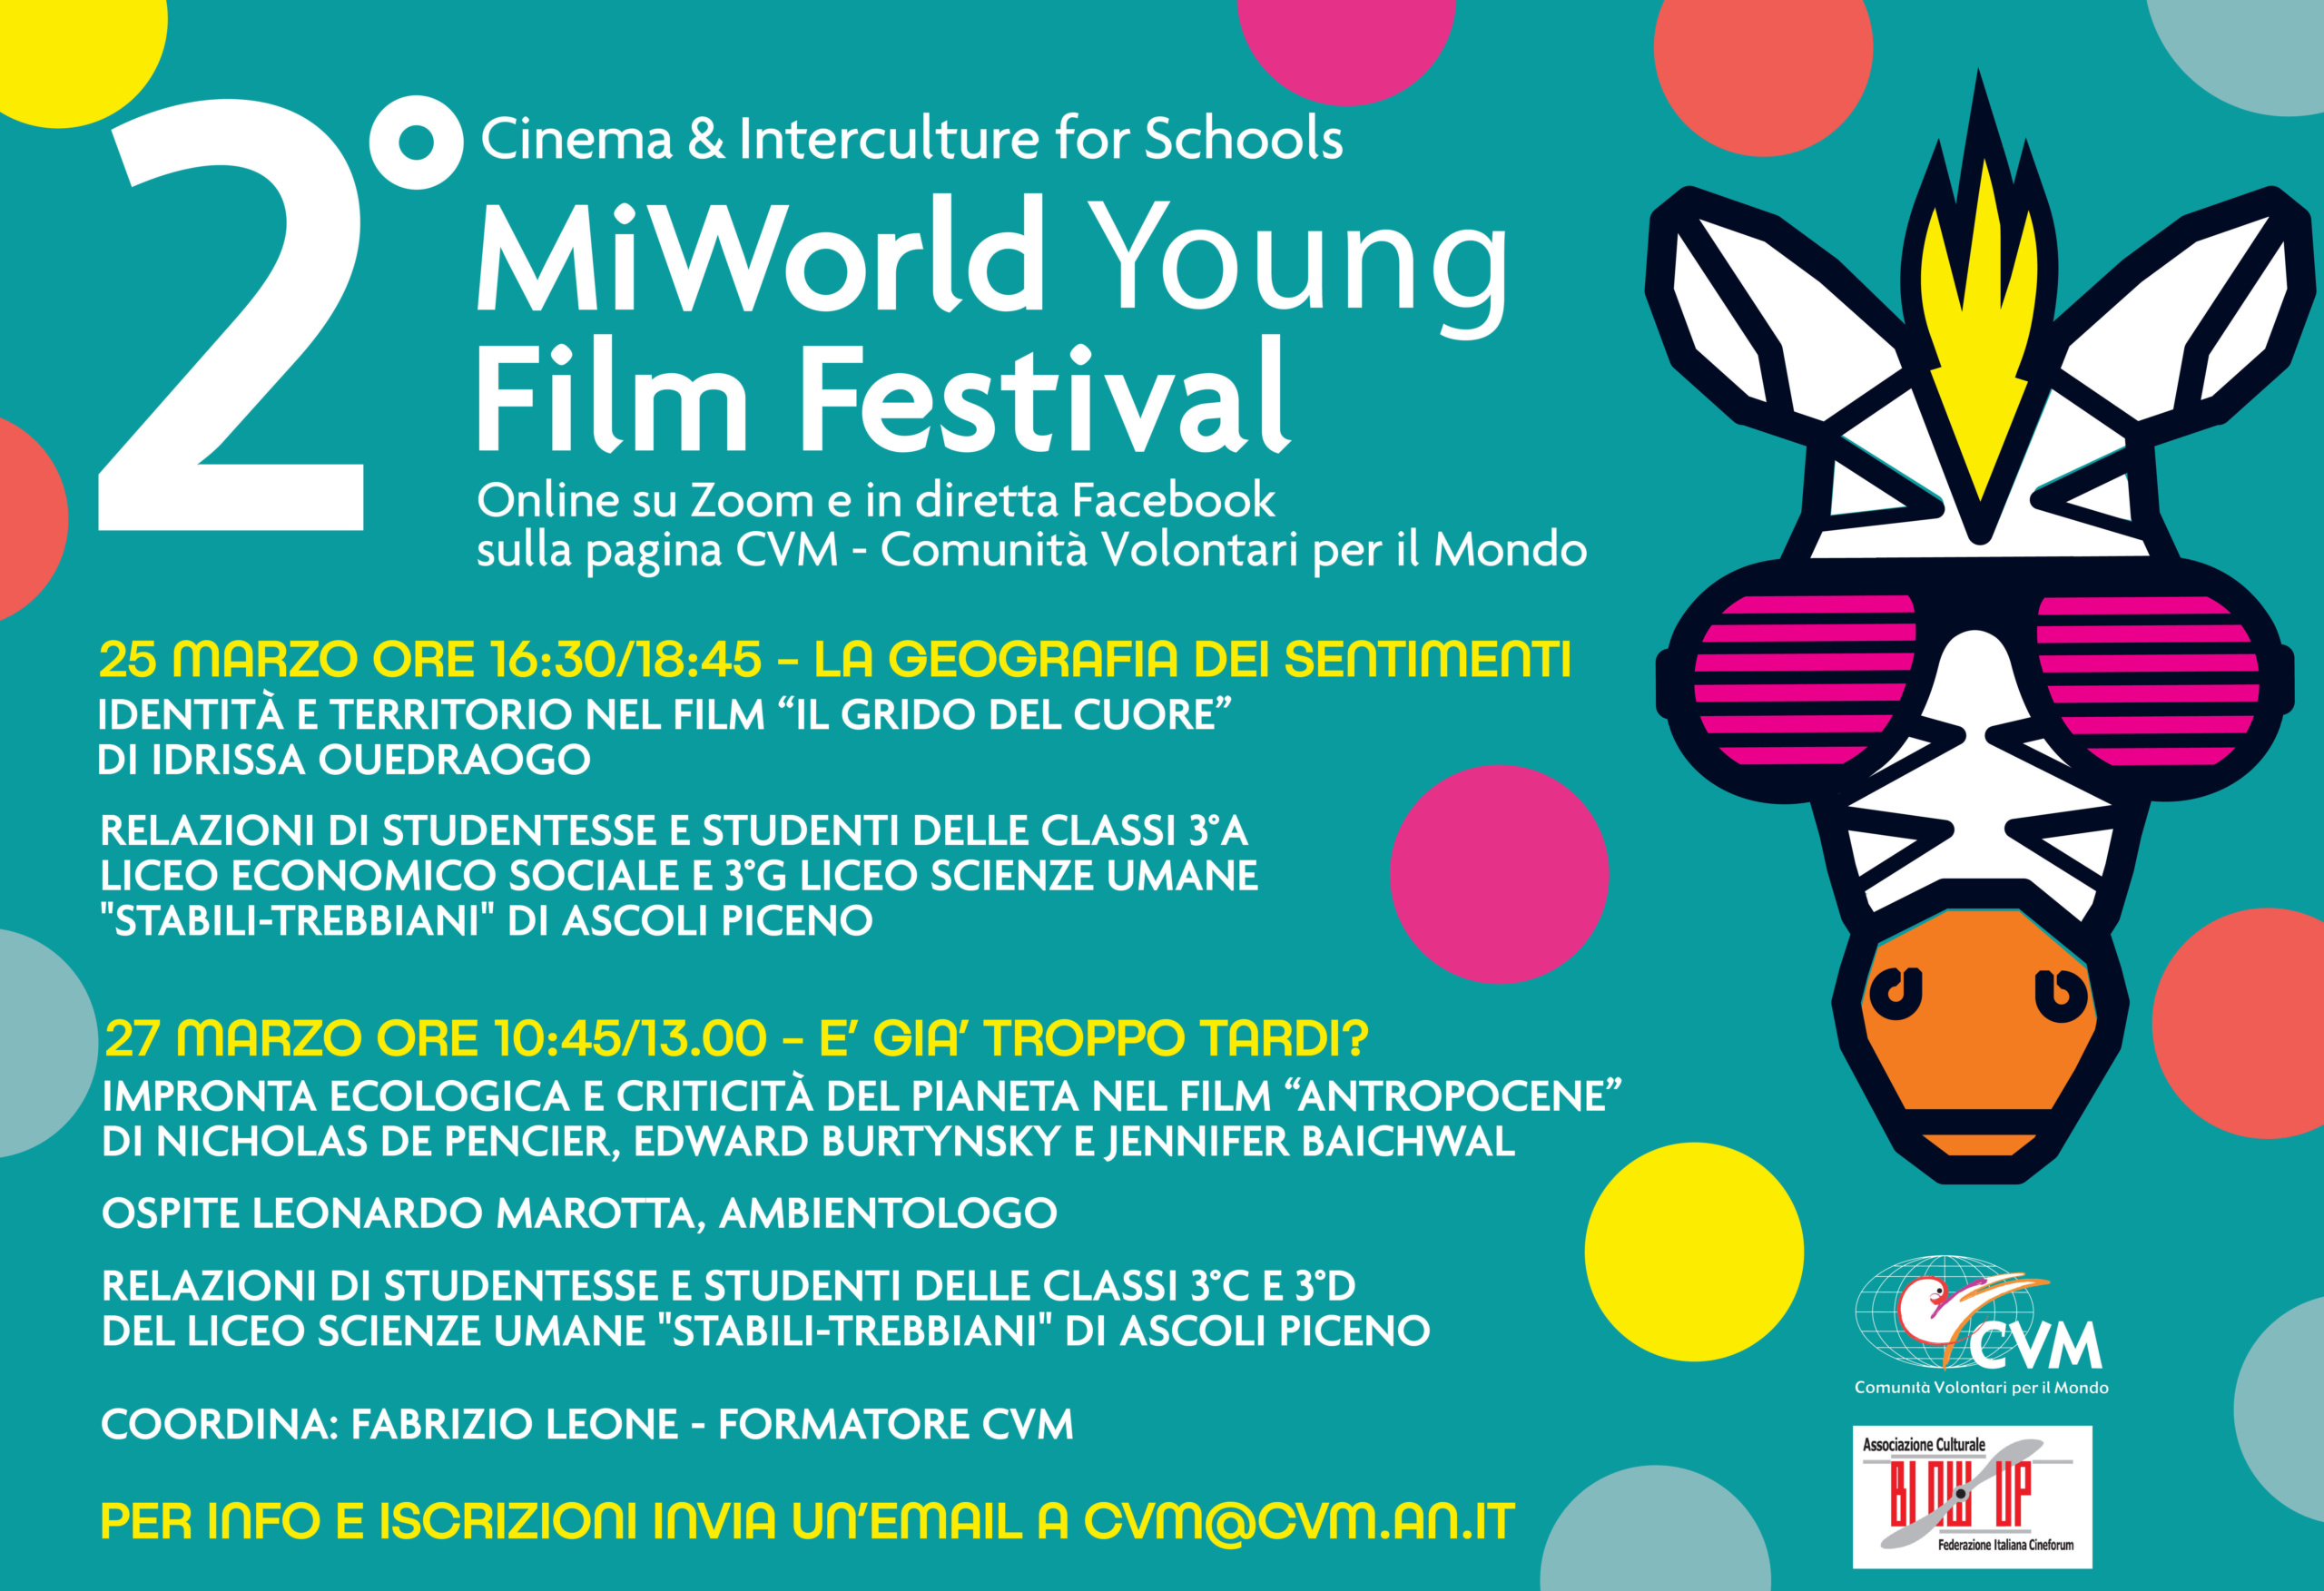 MiWorld Young Film Festival